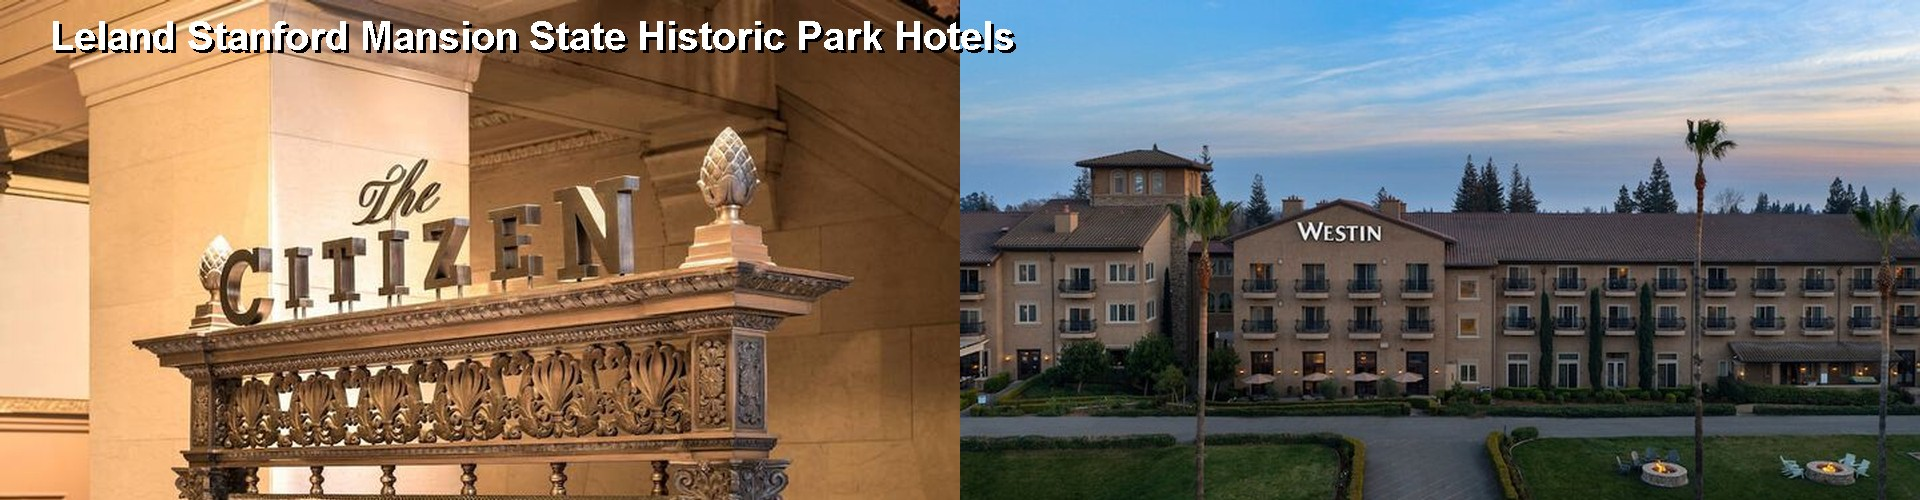 5 Best Hotels near Leland Stanford Mansion State Historic Park